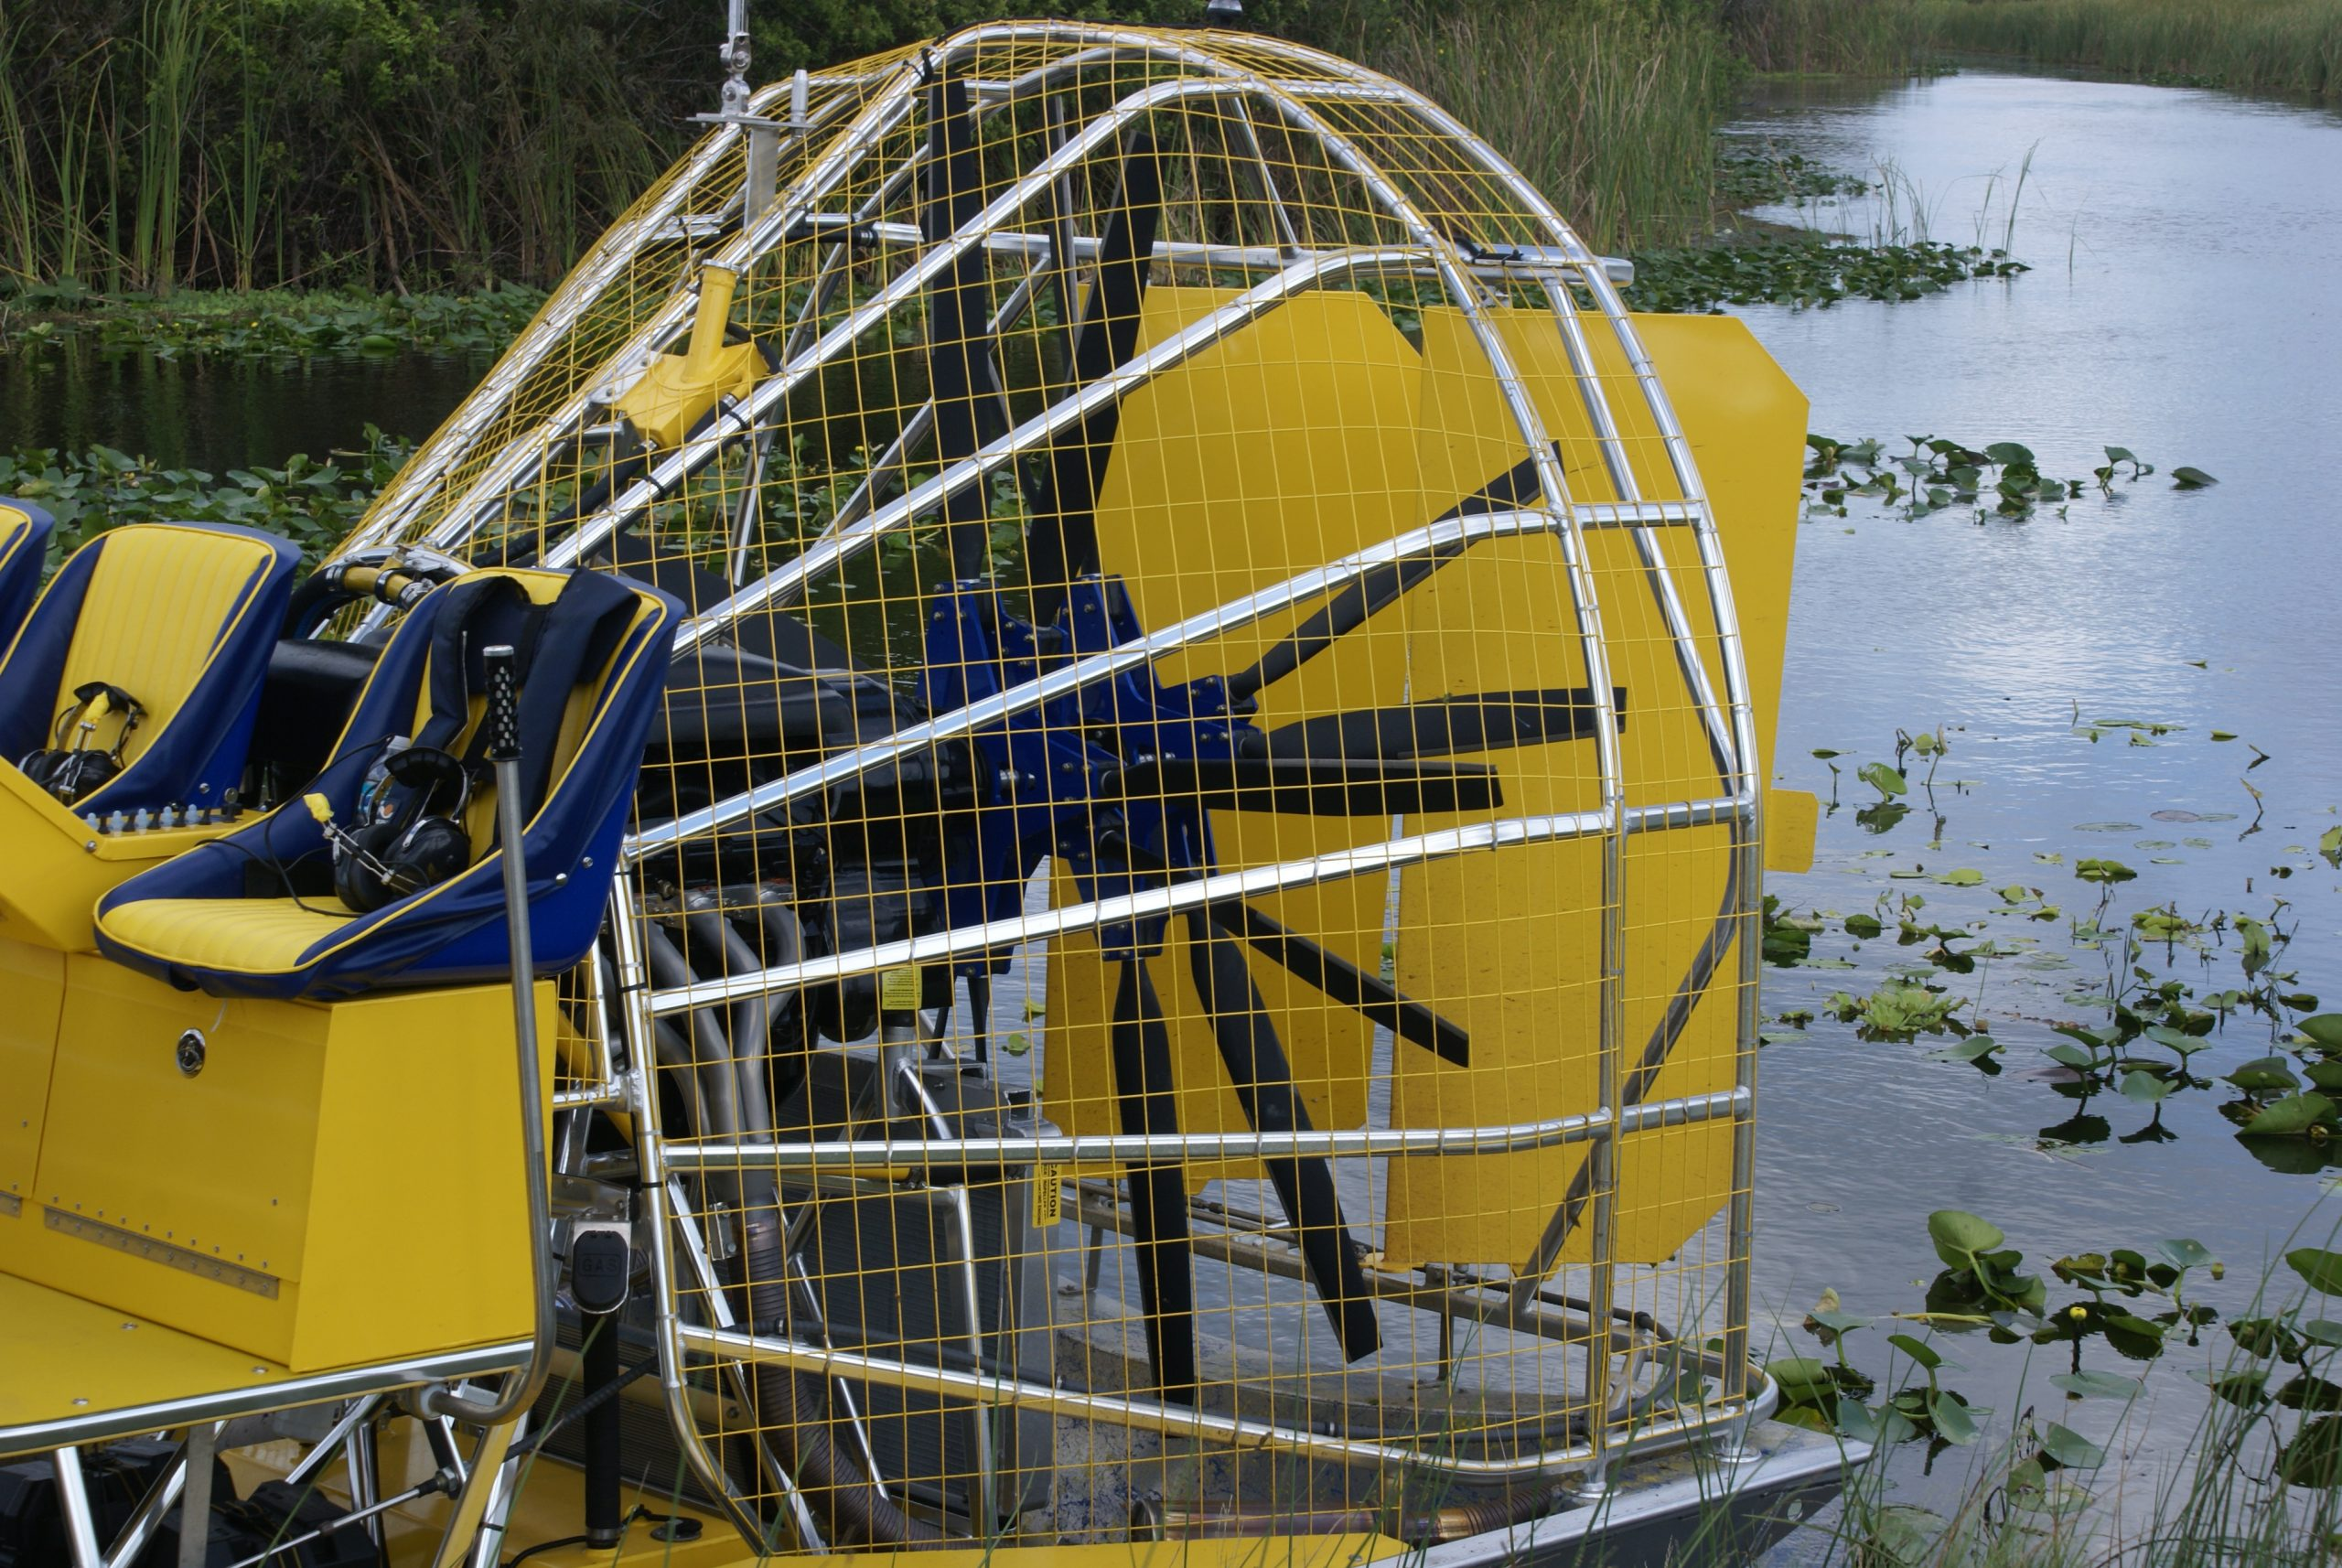 Airboat fan and engine close up